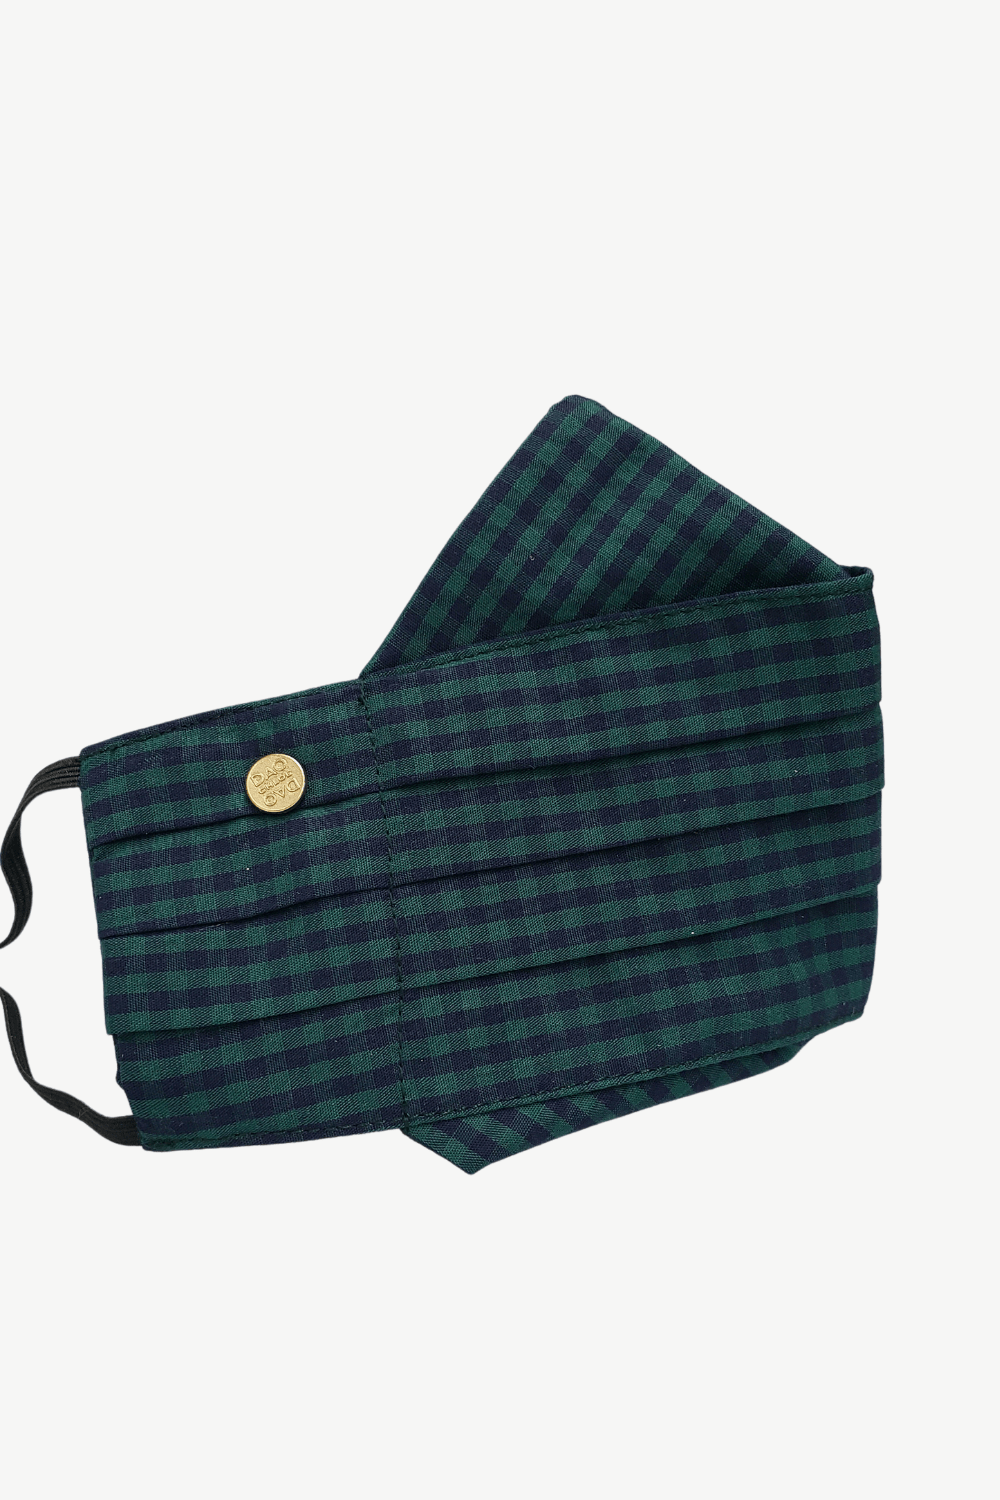 Safely Sip Face Mask Safely Sip Mask in Emerald Green Gingham - Chloe Dao